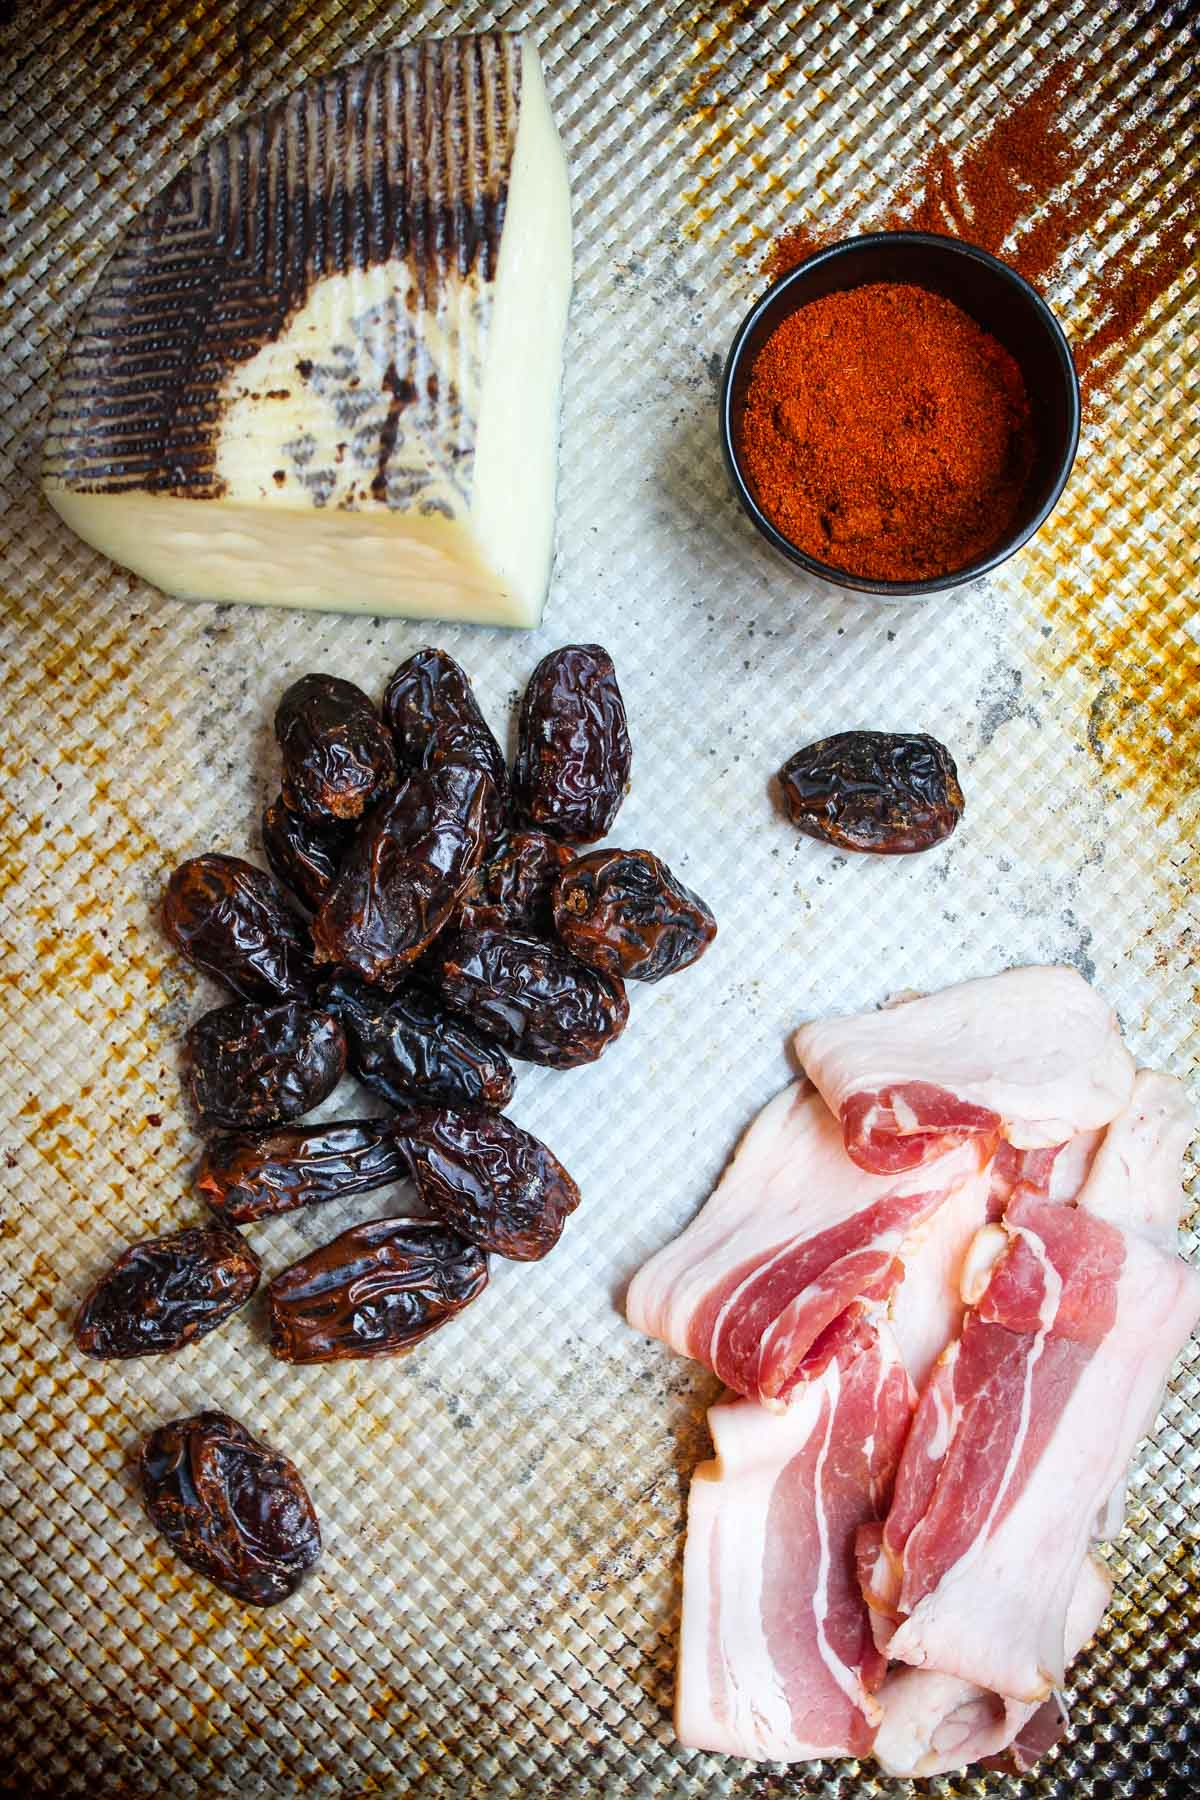 Ingredients for chili bacon wrapped dates are set out. Only four ingredients: Manchego cheese, chili powder, bacon, and dates.